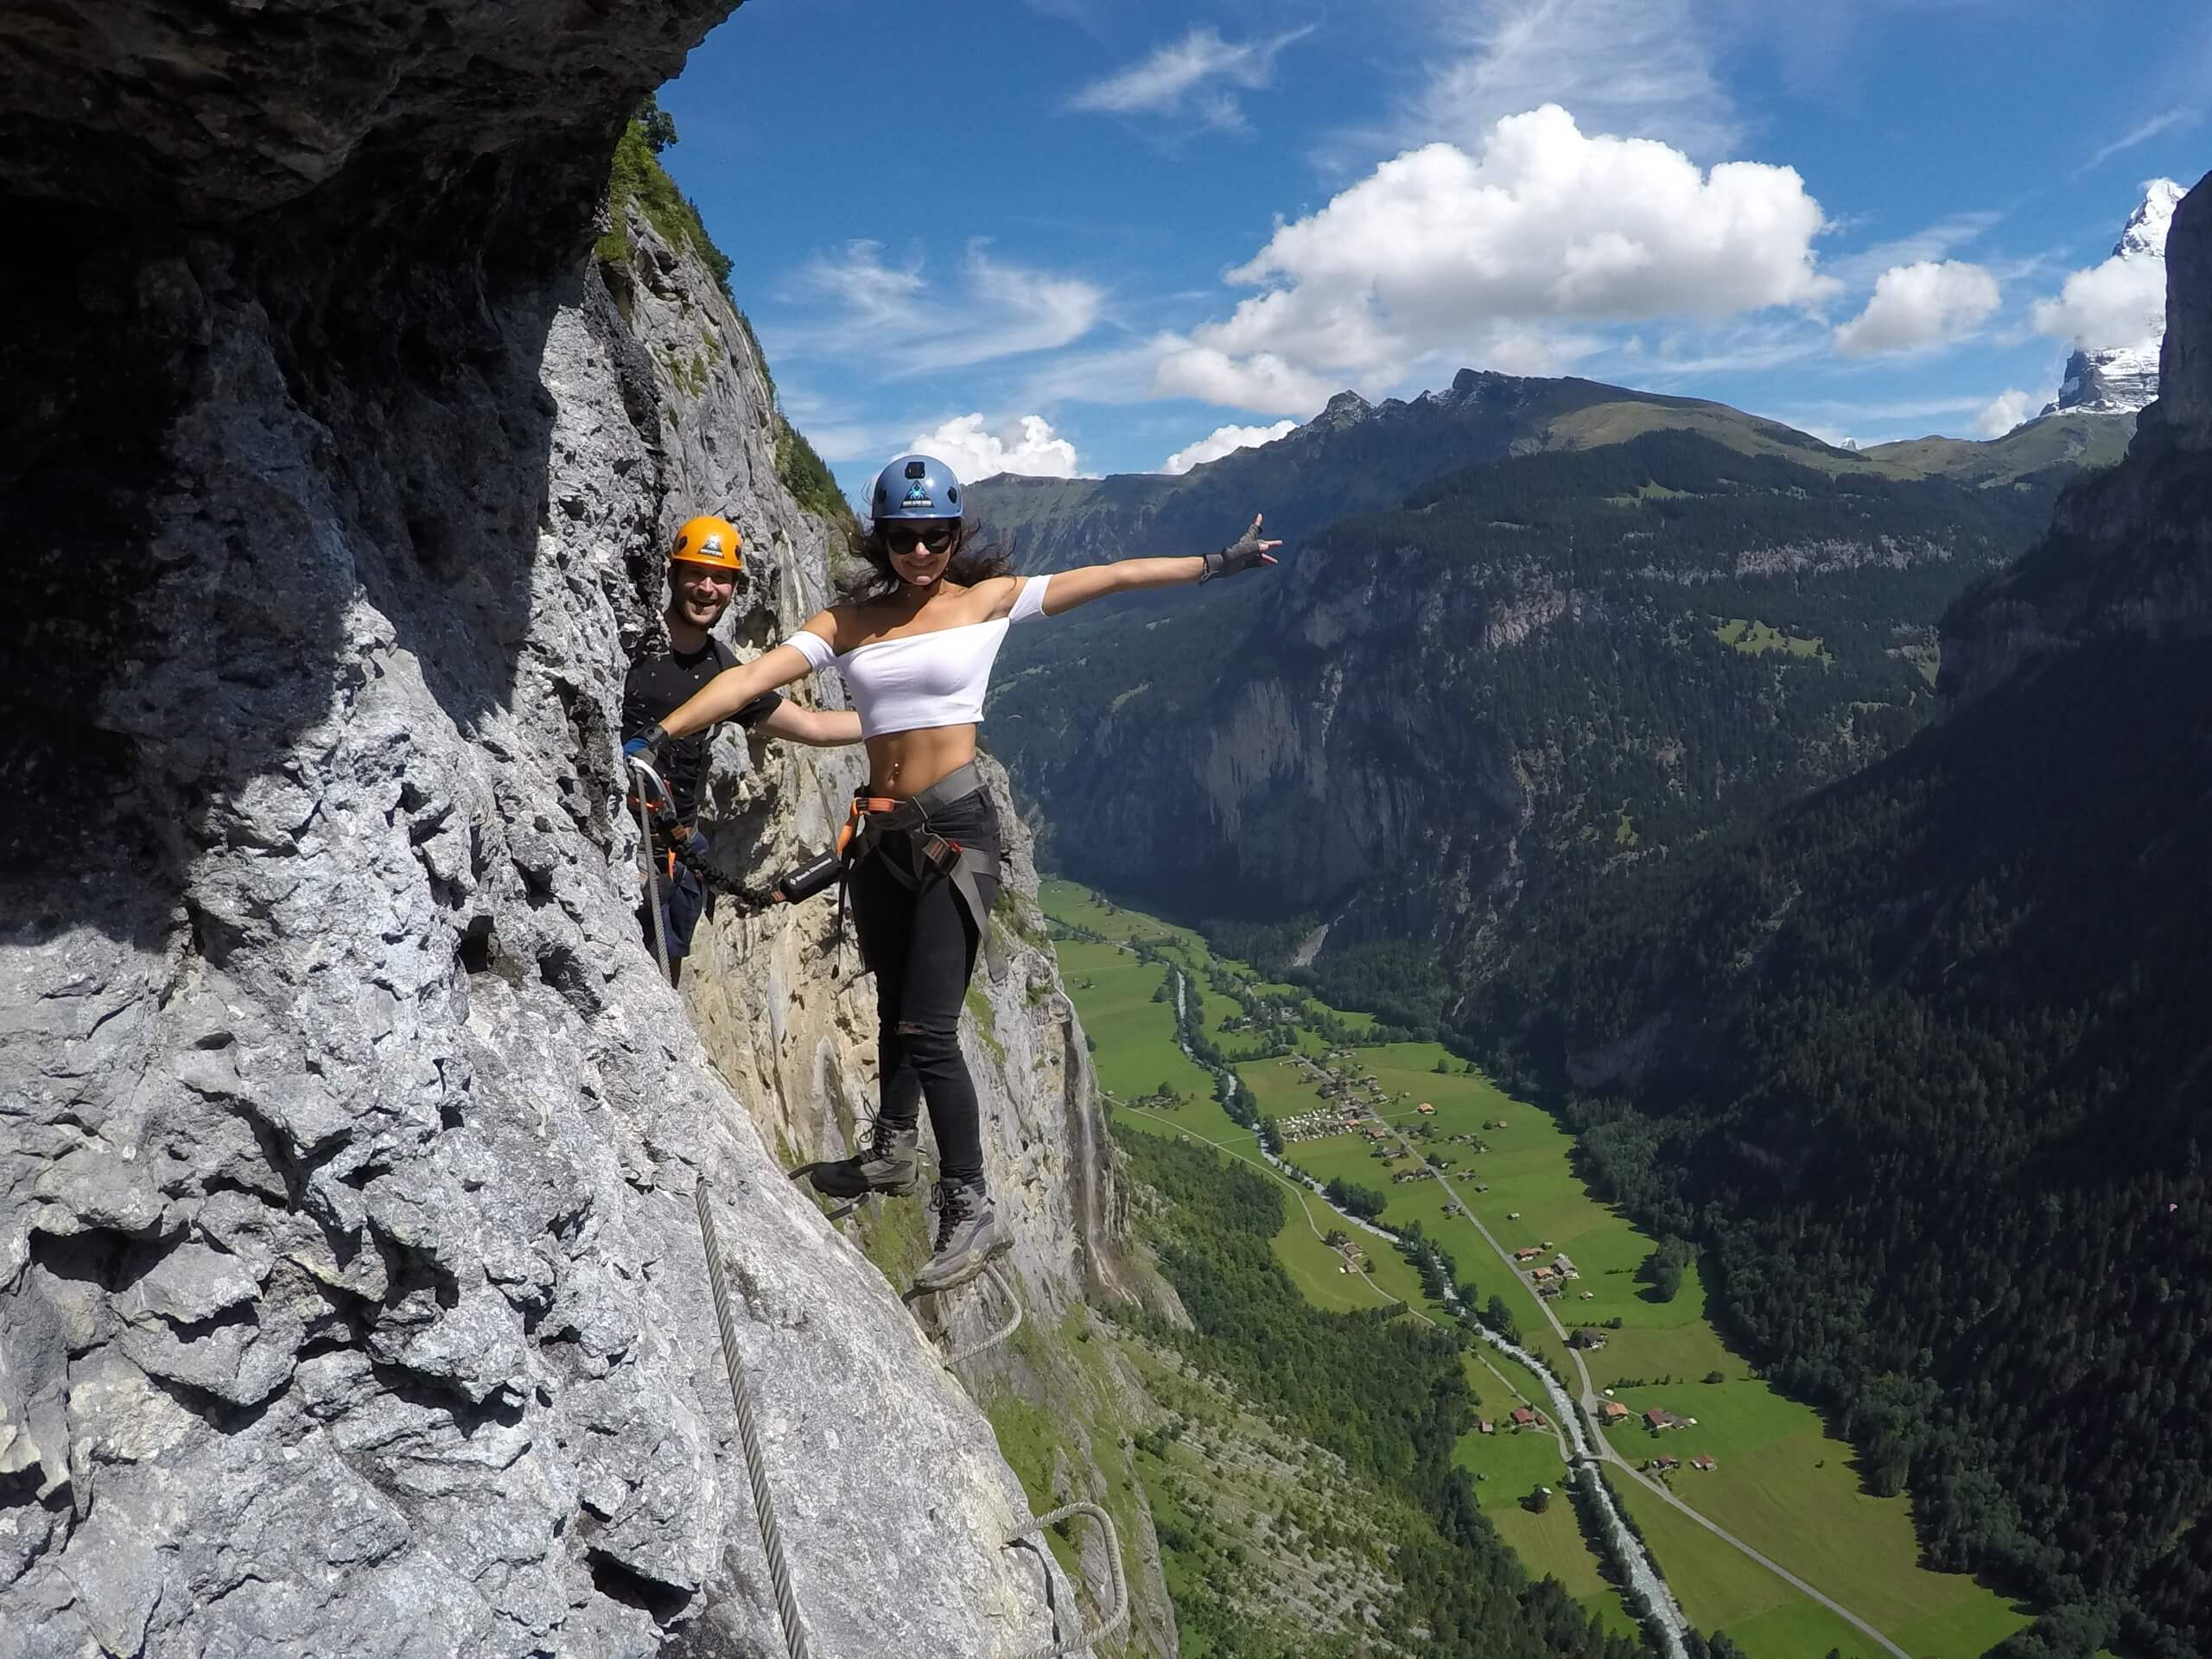 swiss-alpine-guides-via-ferrata-klettern-sommer